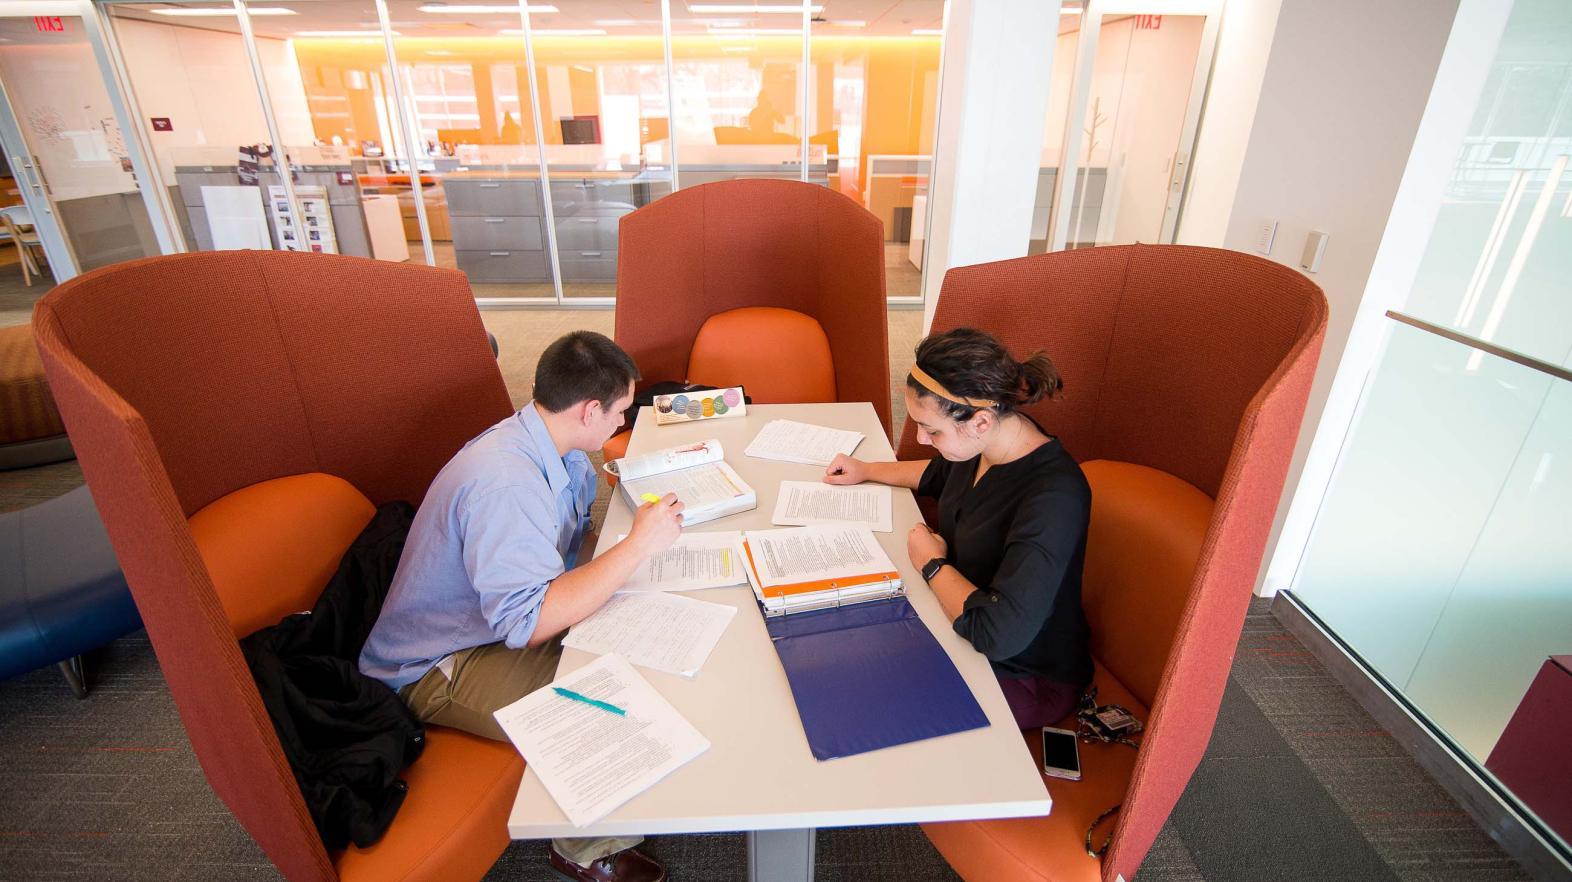 Two students sit at a table in the Learning commons, studying.